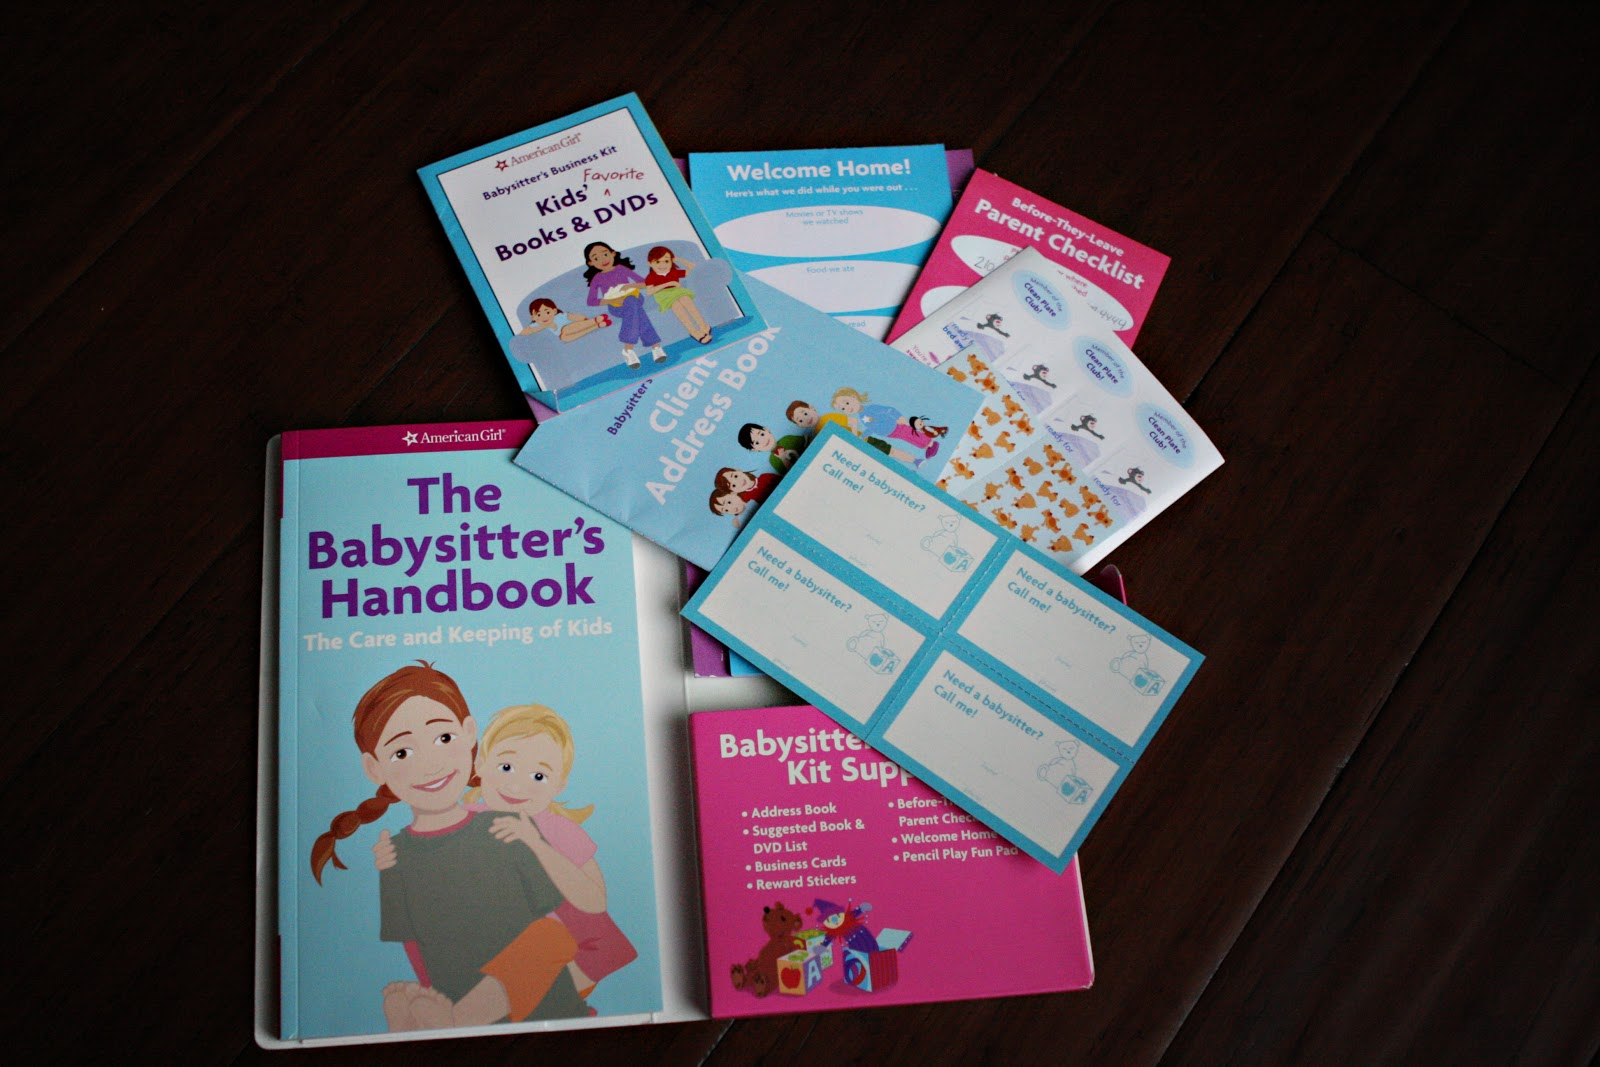 Make Your Own Business Cards American Girl Choice Image - Card ...